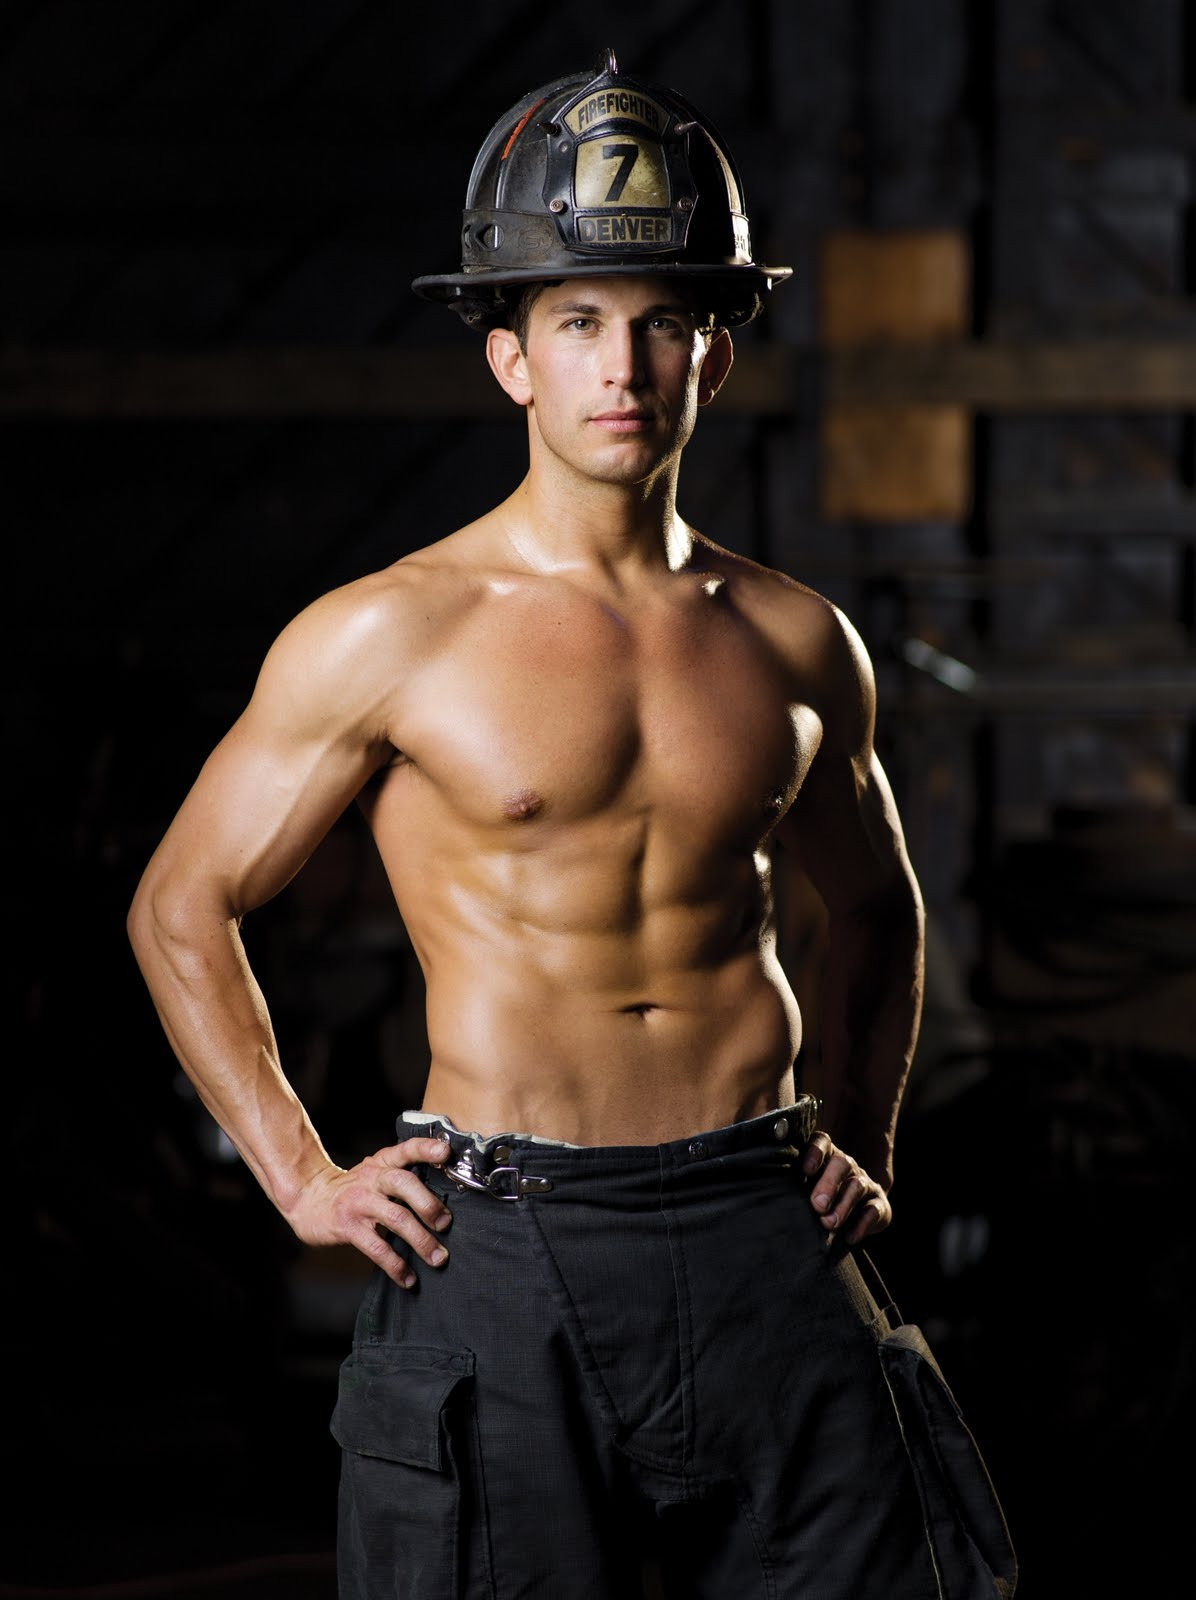 Sexy firefighter costumes uk